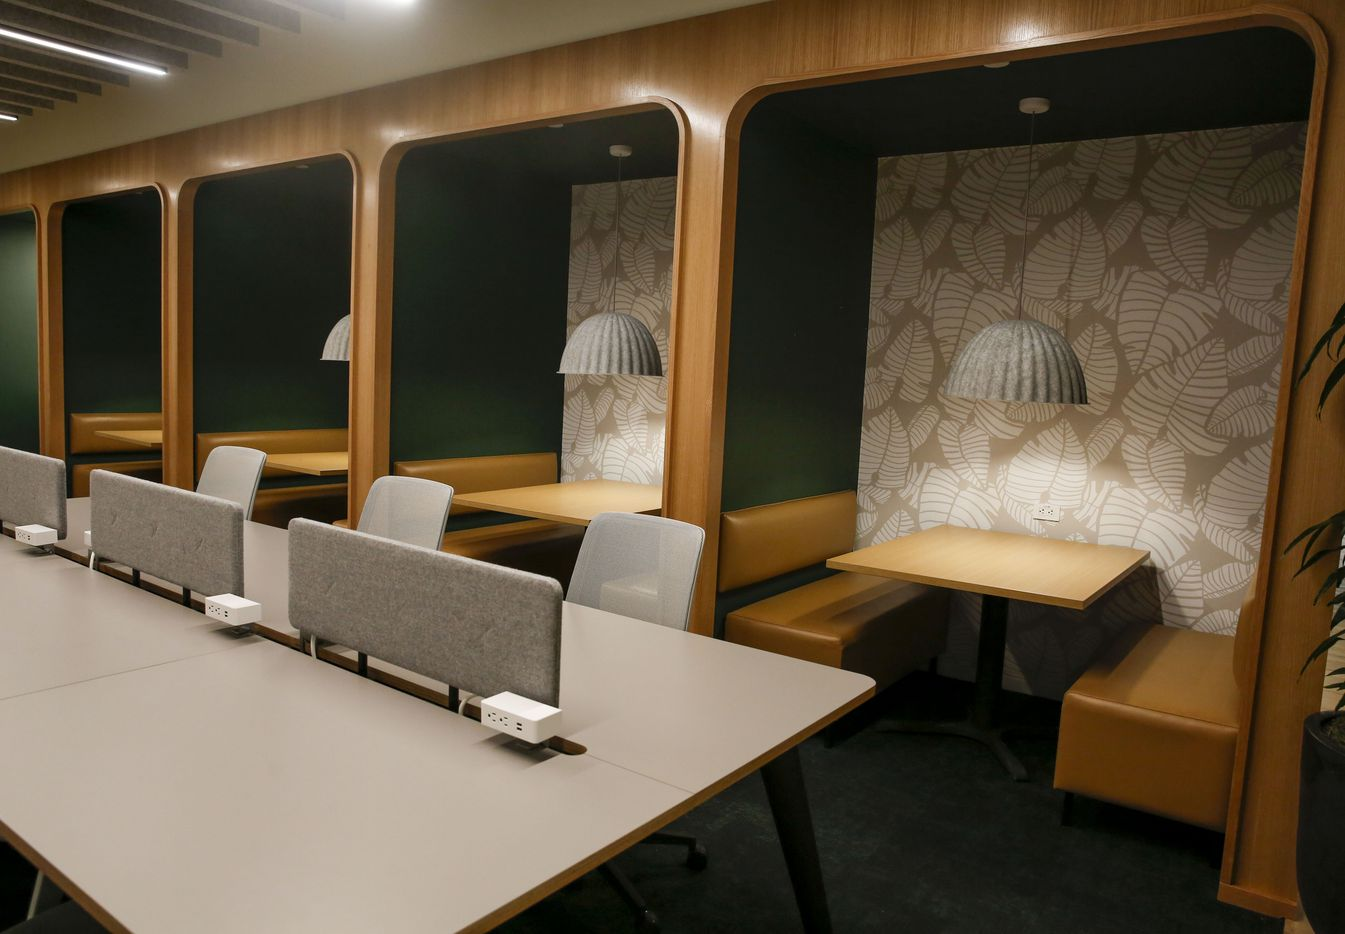 There are many different styles of co-working spaces at Hana.